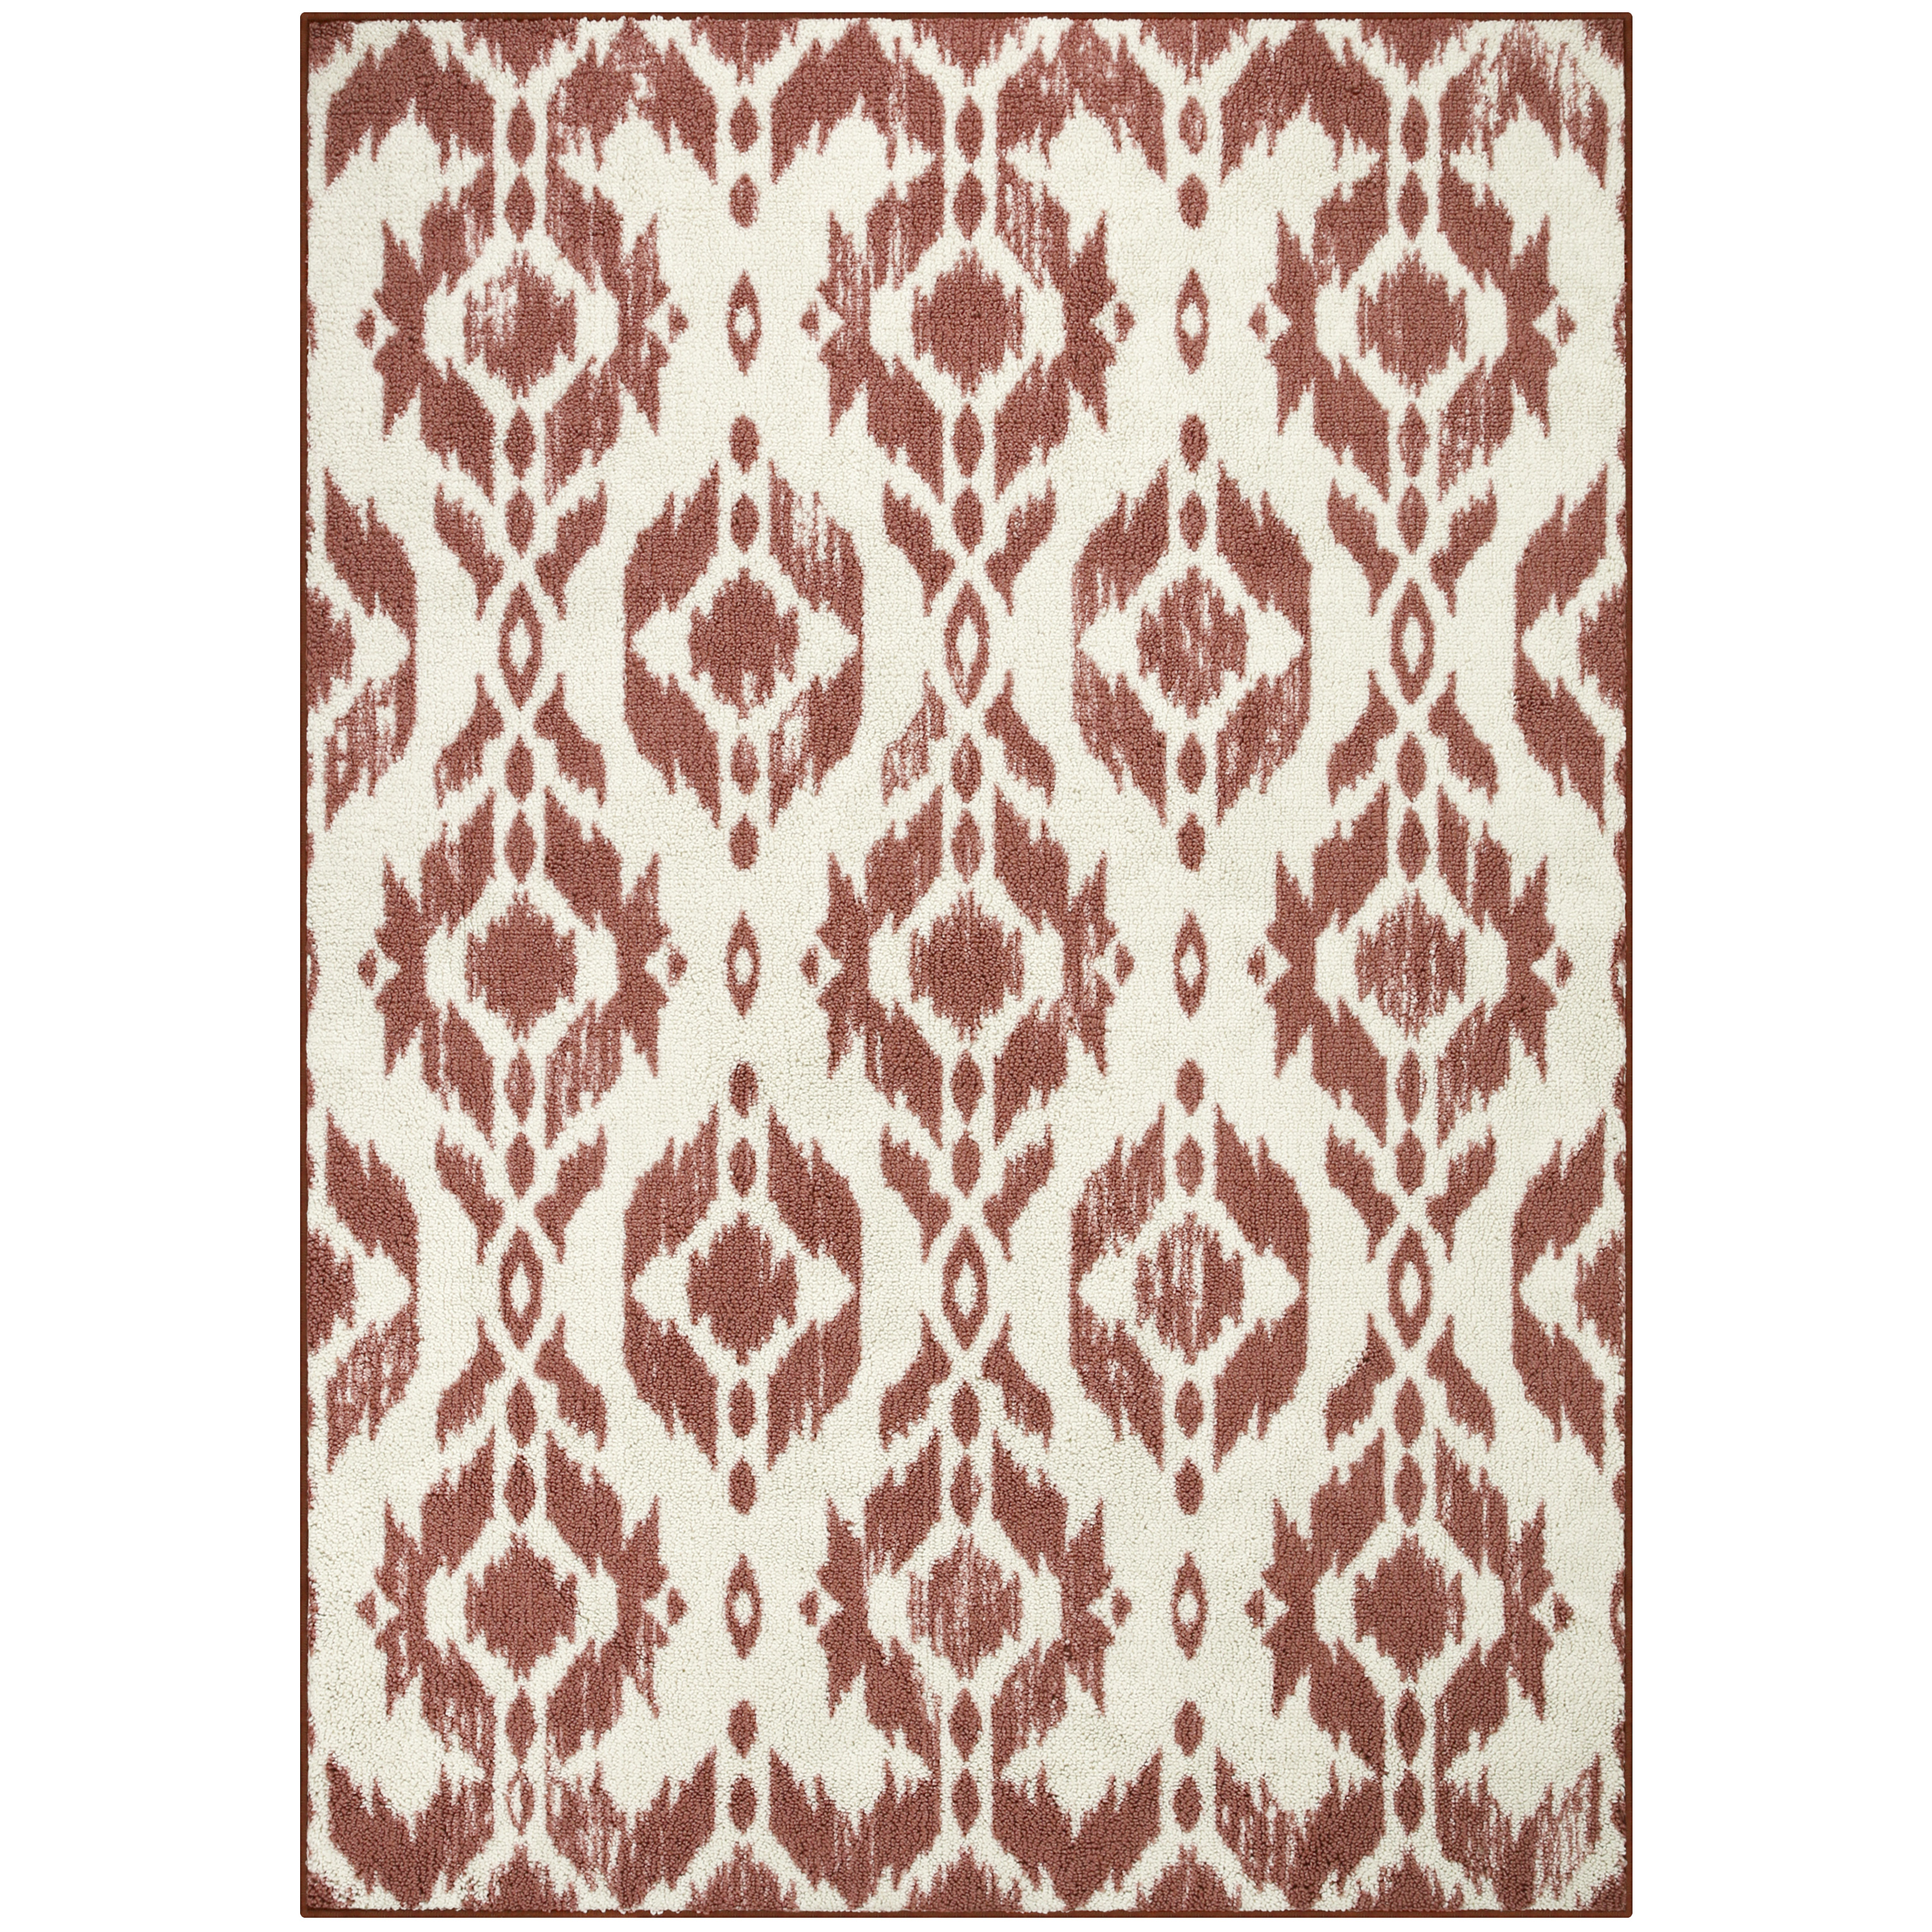 Mainstays Mundare Super Loop Printed Nylon Cream and Coral Washed Ikat Area Rug or Runner, Multiple Sizes